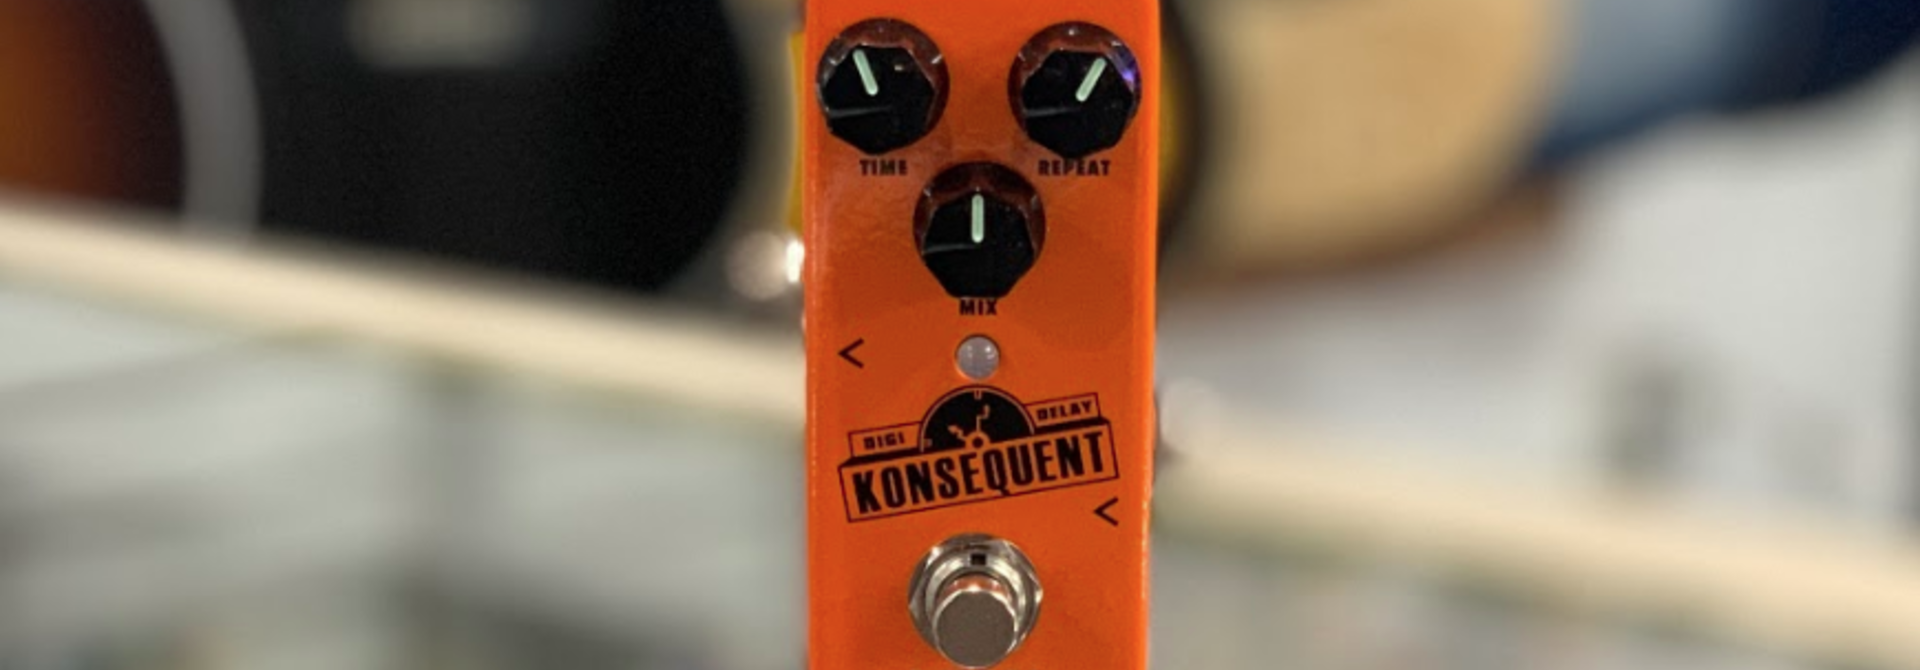 NUX Konsequent Digi Delay